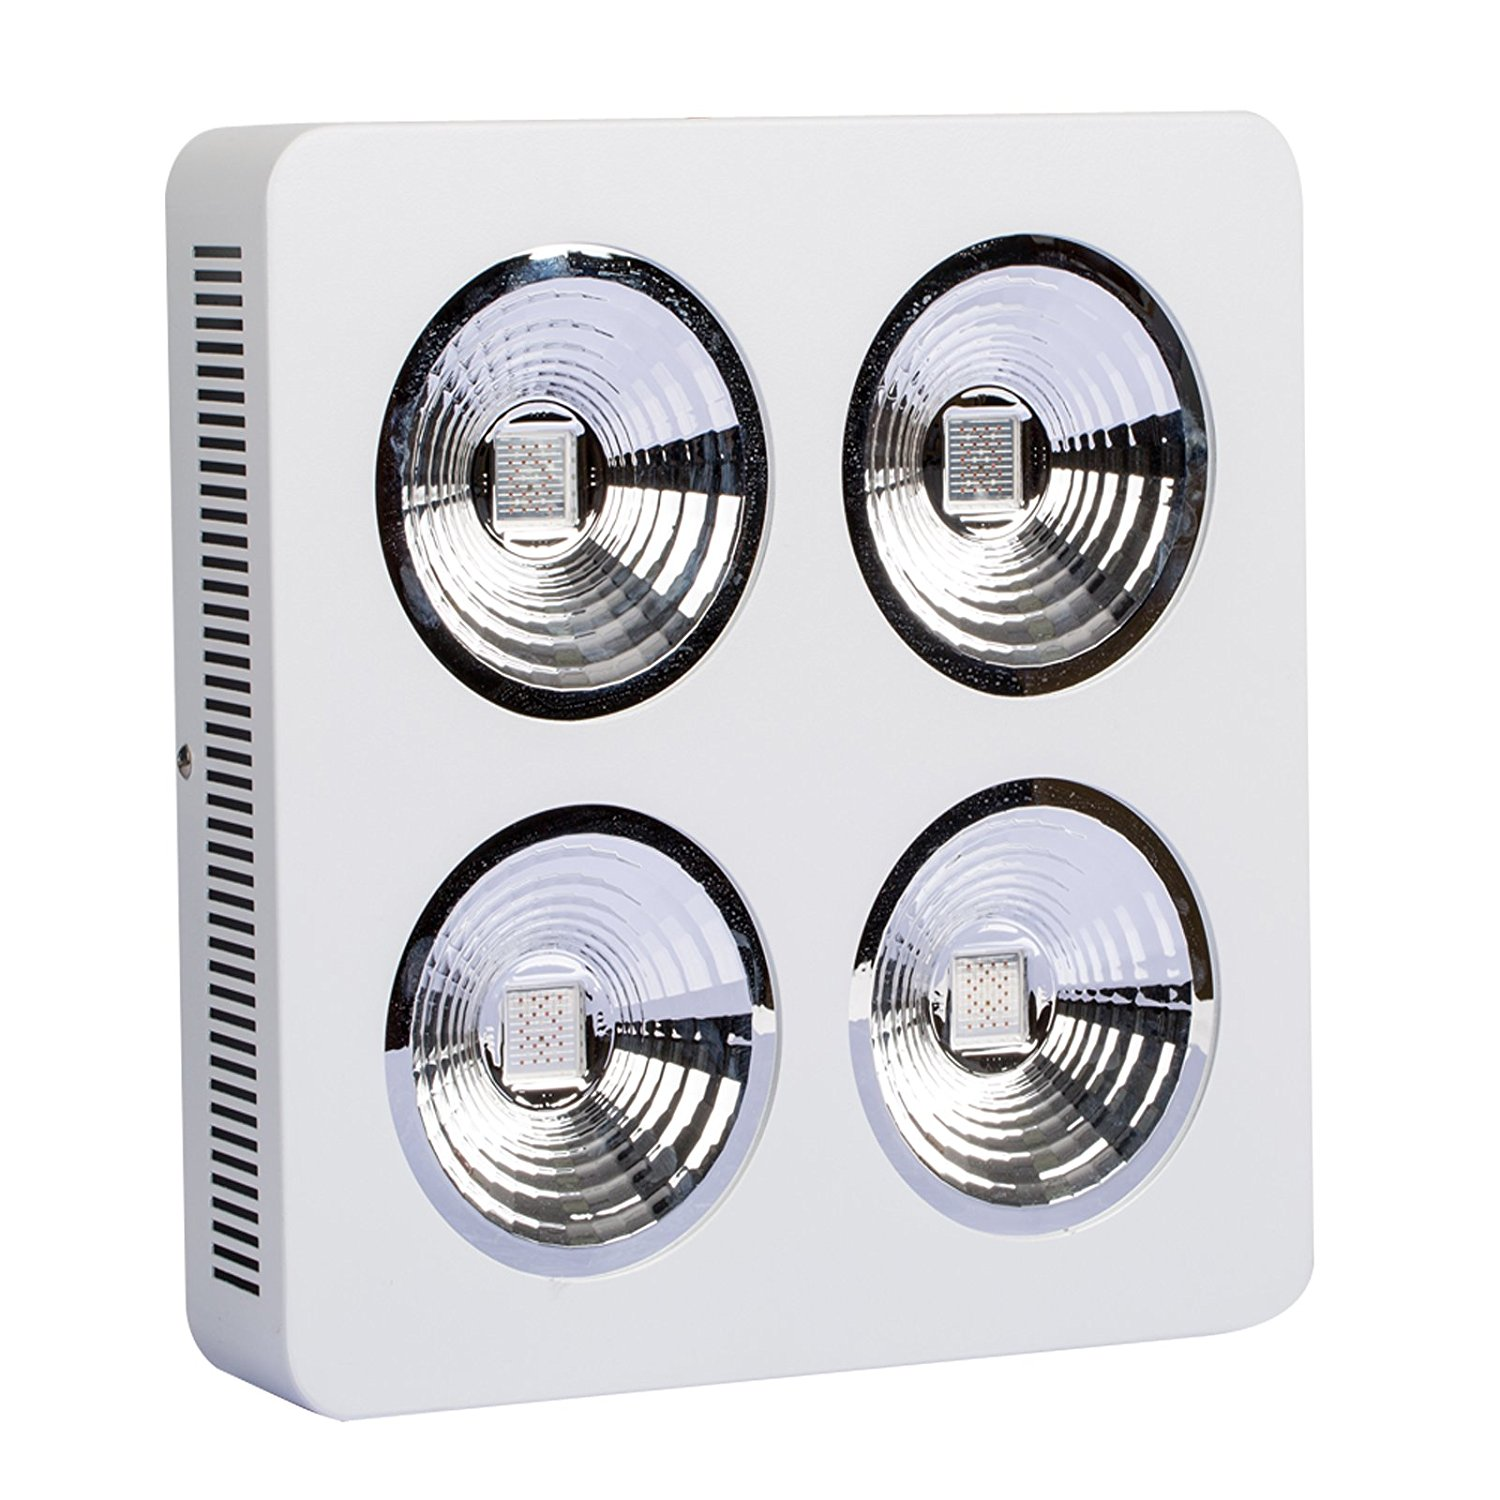 Cob Led Grow Lights Compare Reviews Of The Best Full